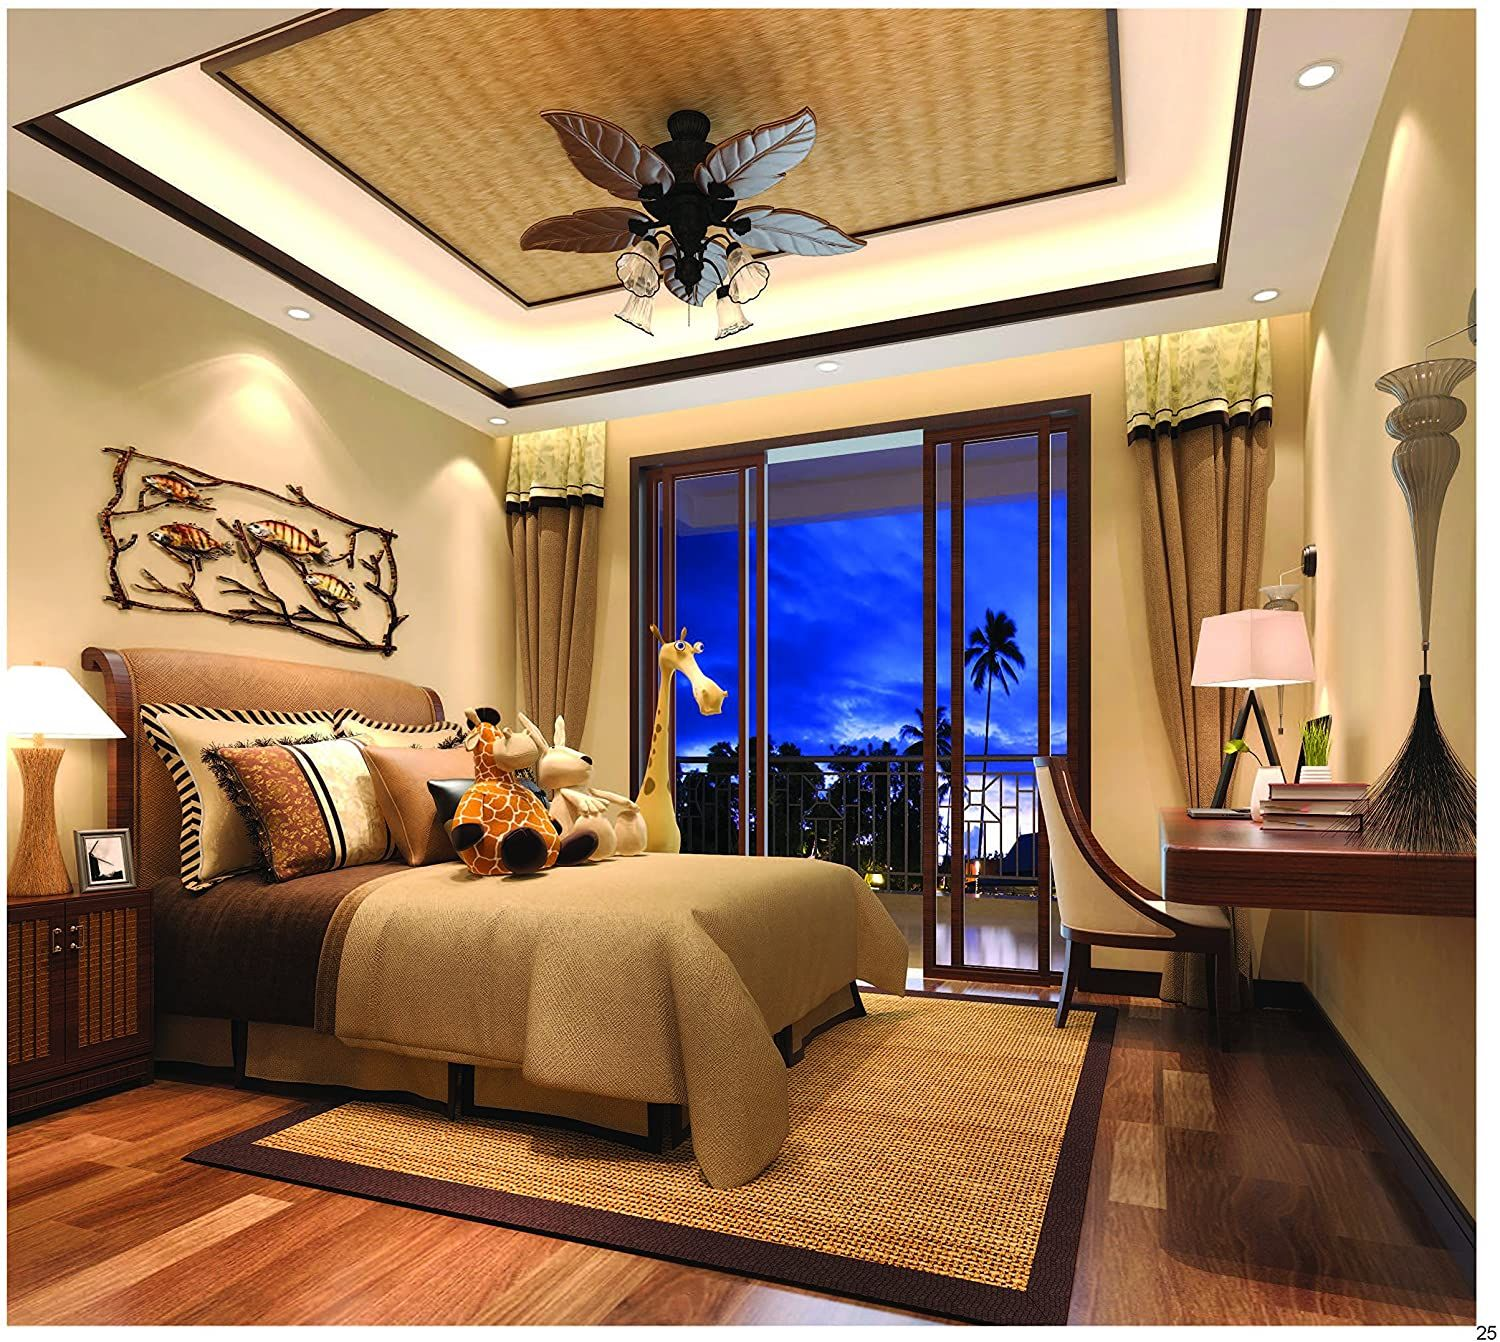 Buy Contemporary Ceilings vol 8 Book Online at Low Prices ...